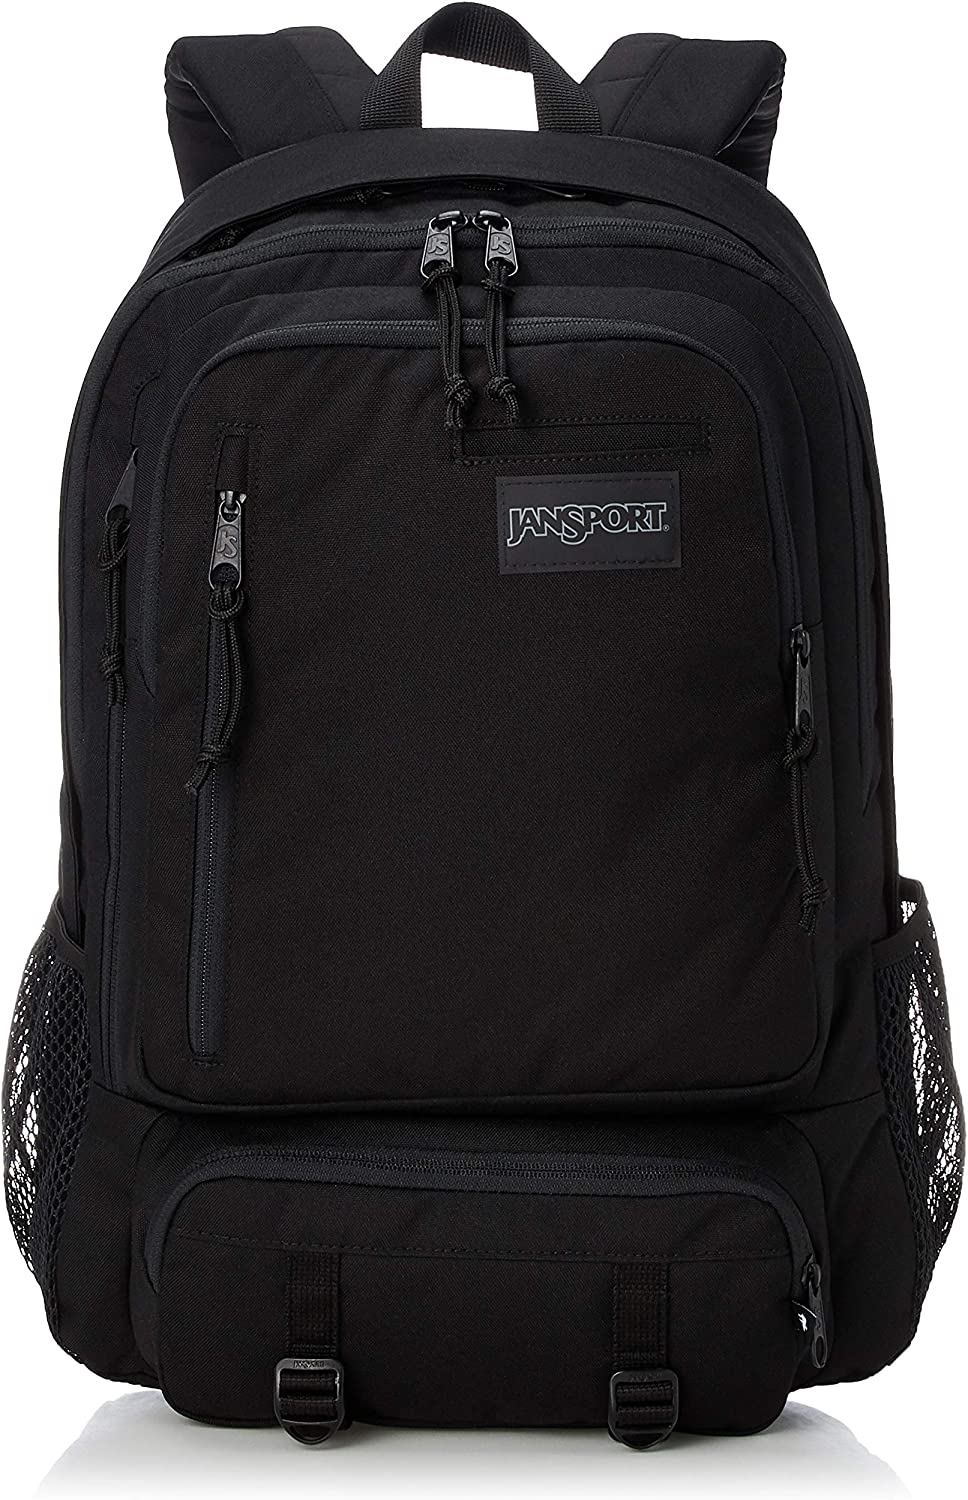 JanSport JS00T45G008 Envoy Laptop Backpack (Black)